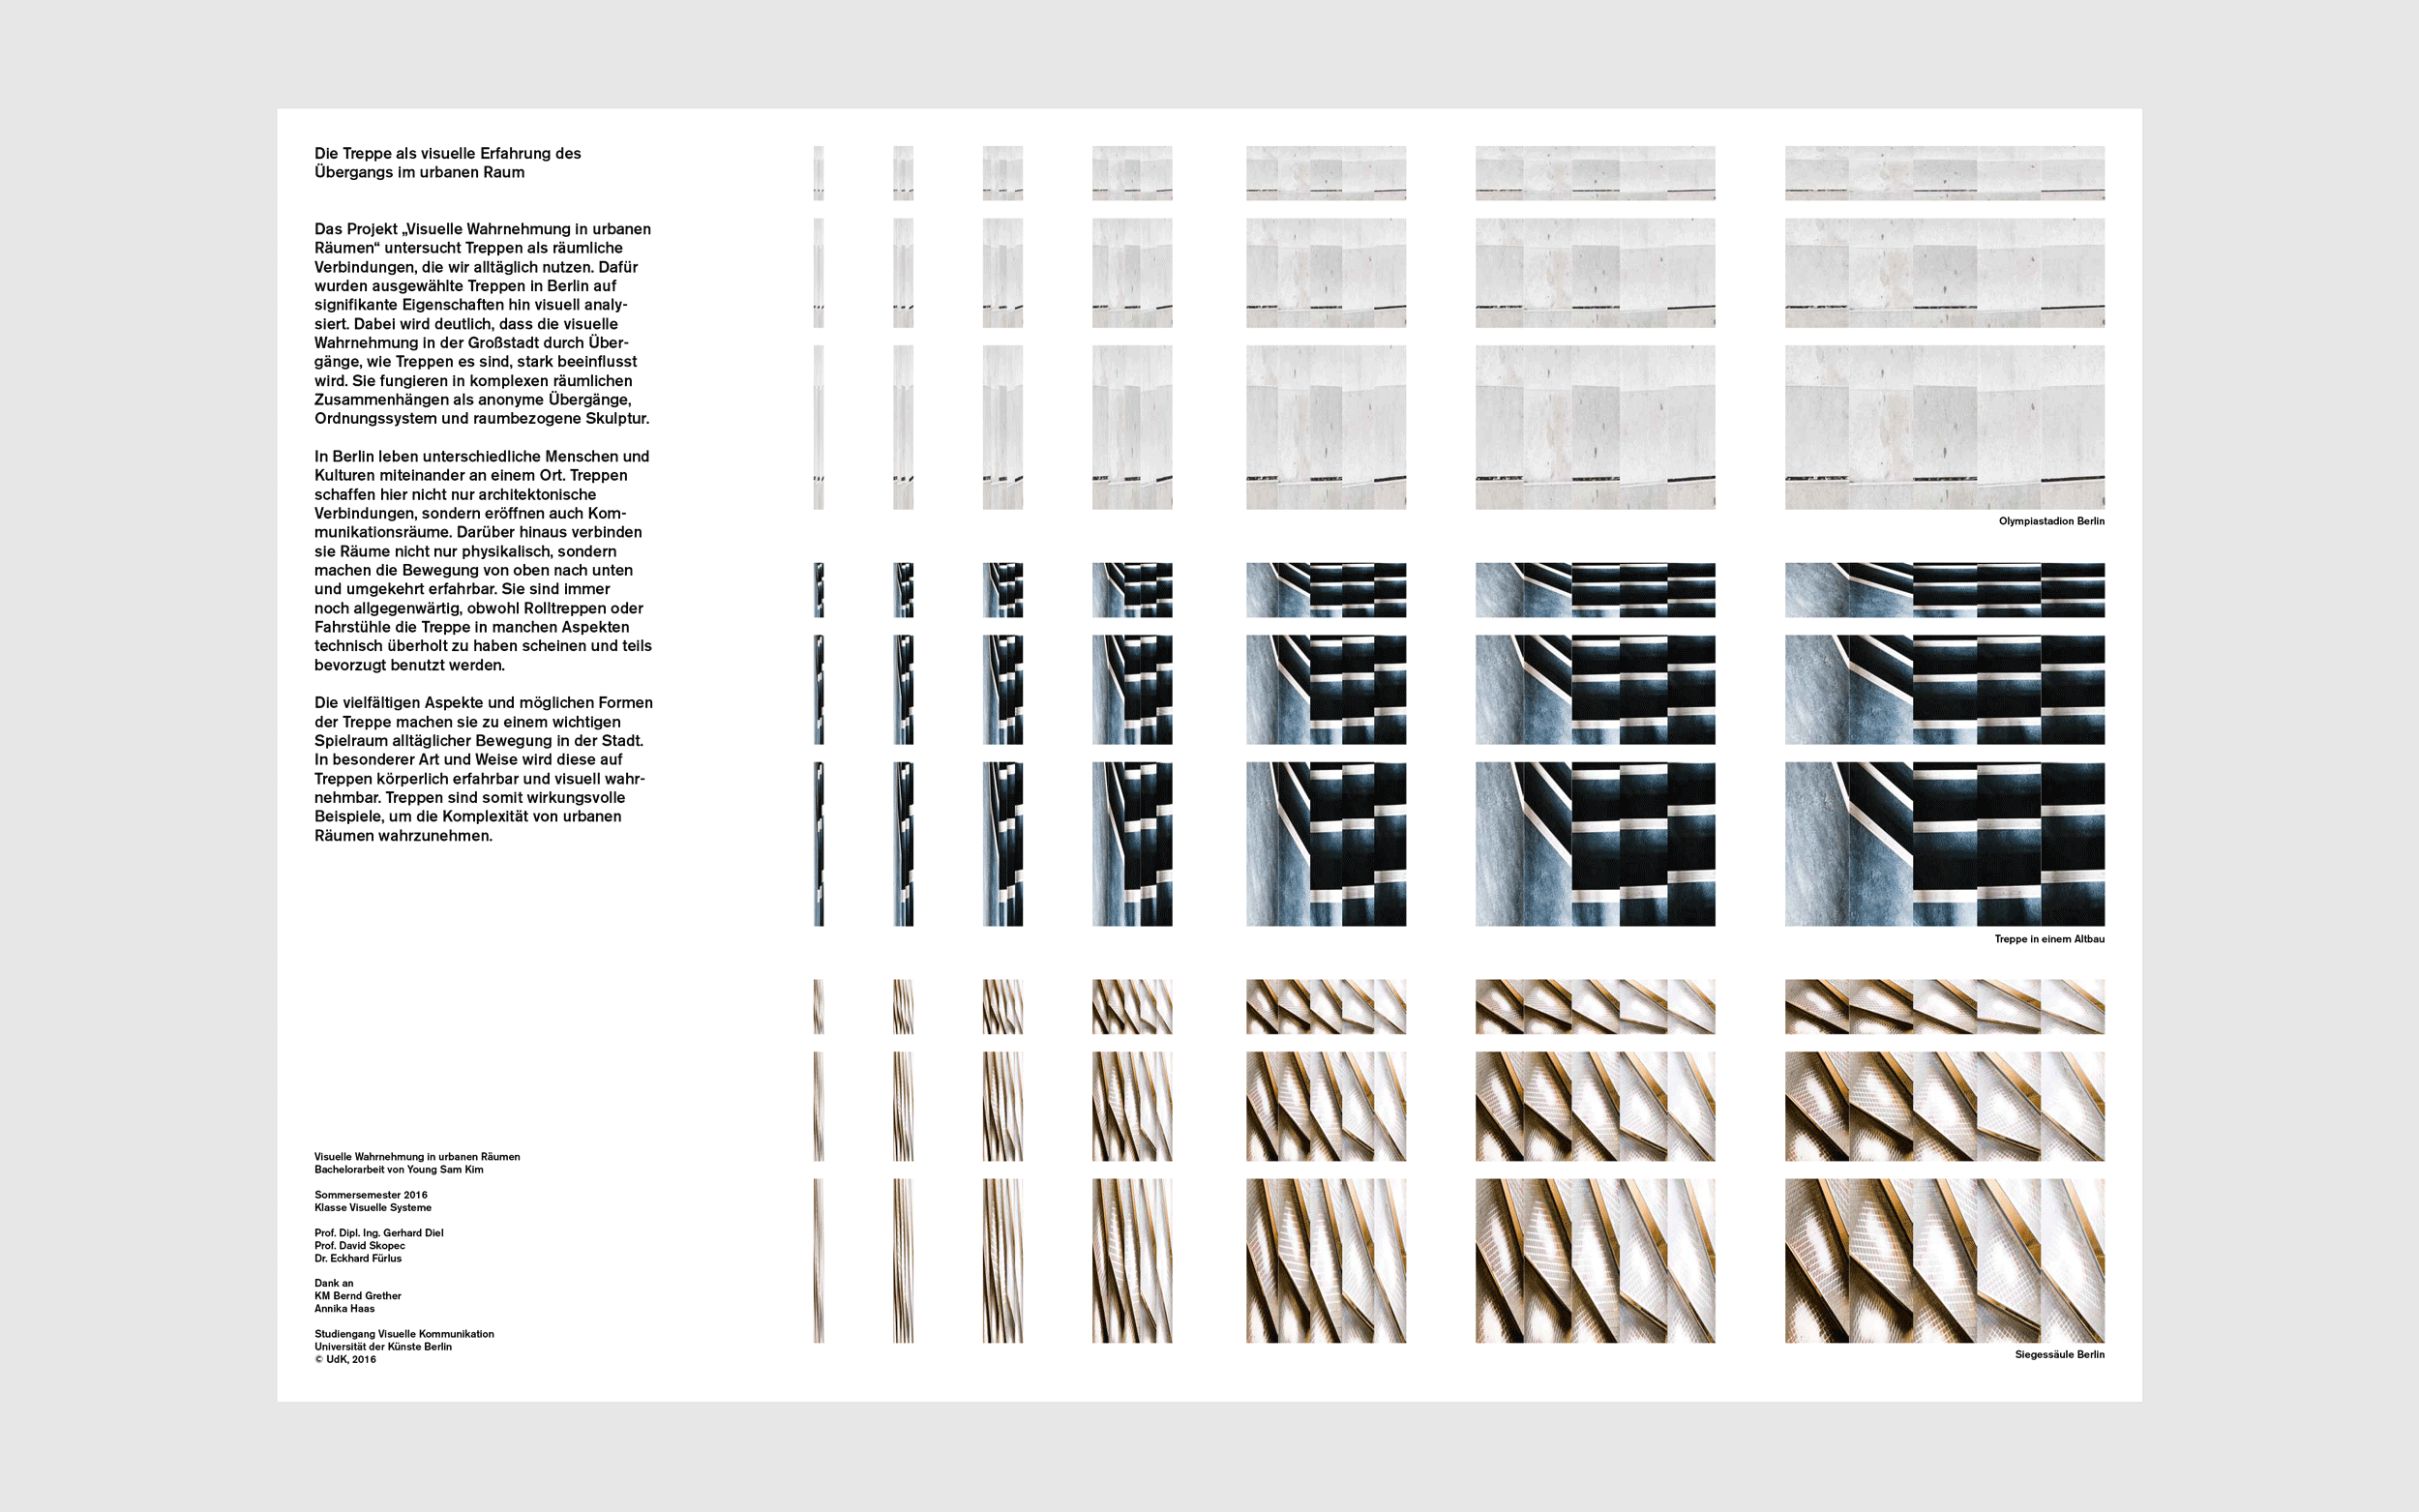 Documentation of Young Sam Kim's UdK Bachelor work: Staircase / visual research in urban space.